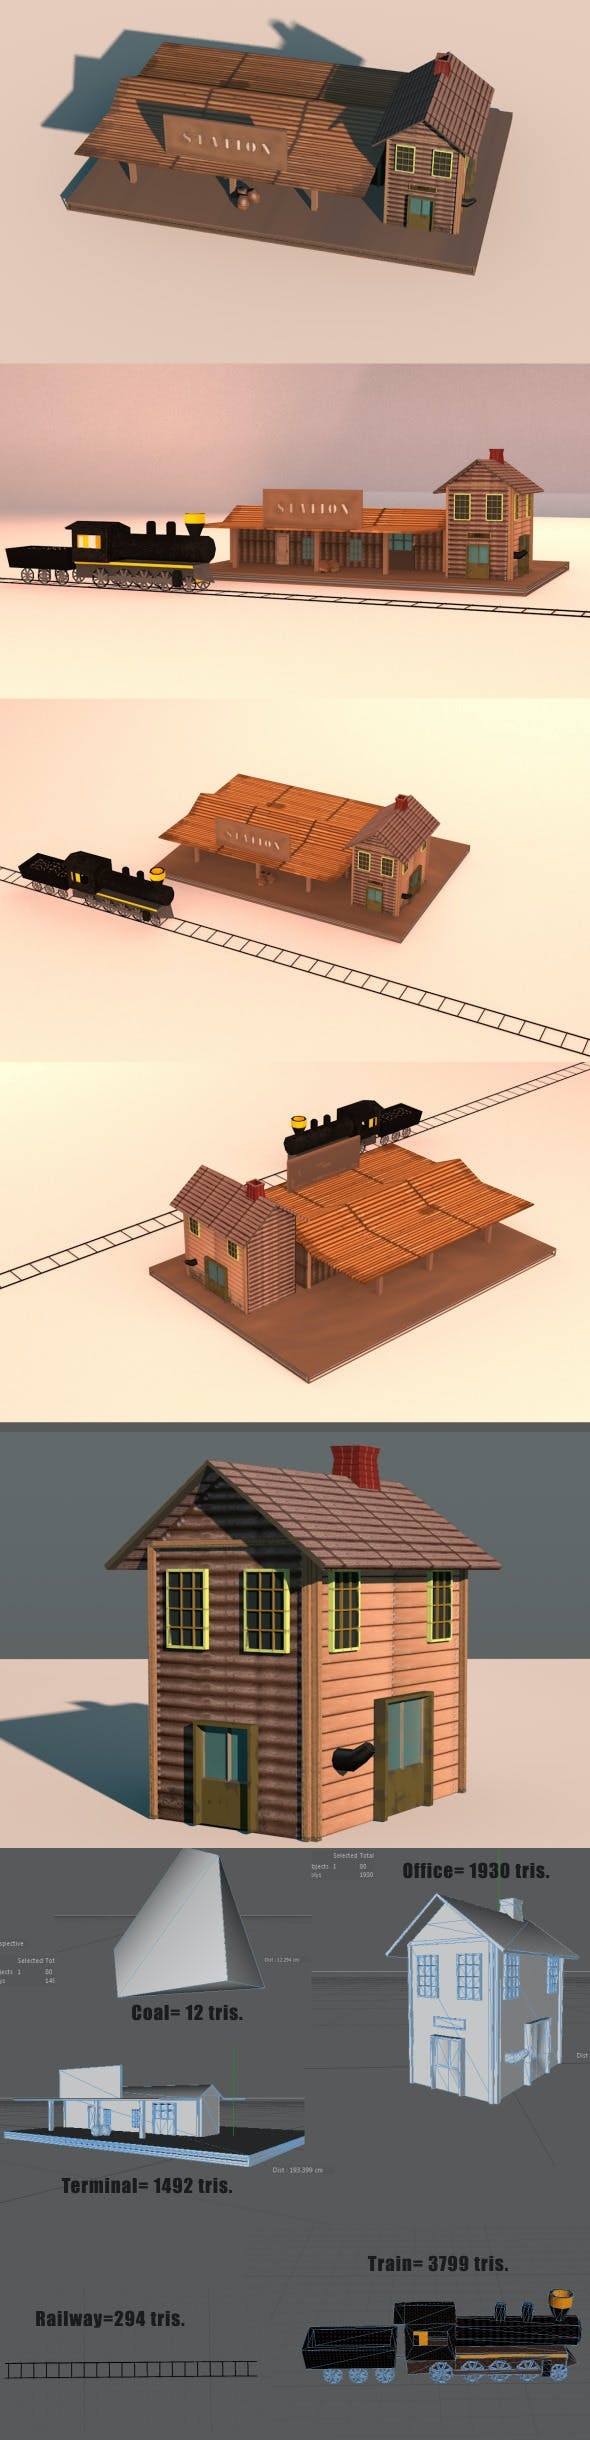 Low Poly Wild West Train Station - 3DOcean Item for Sale